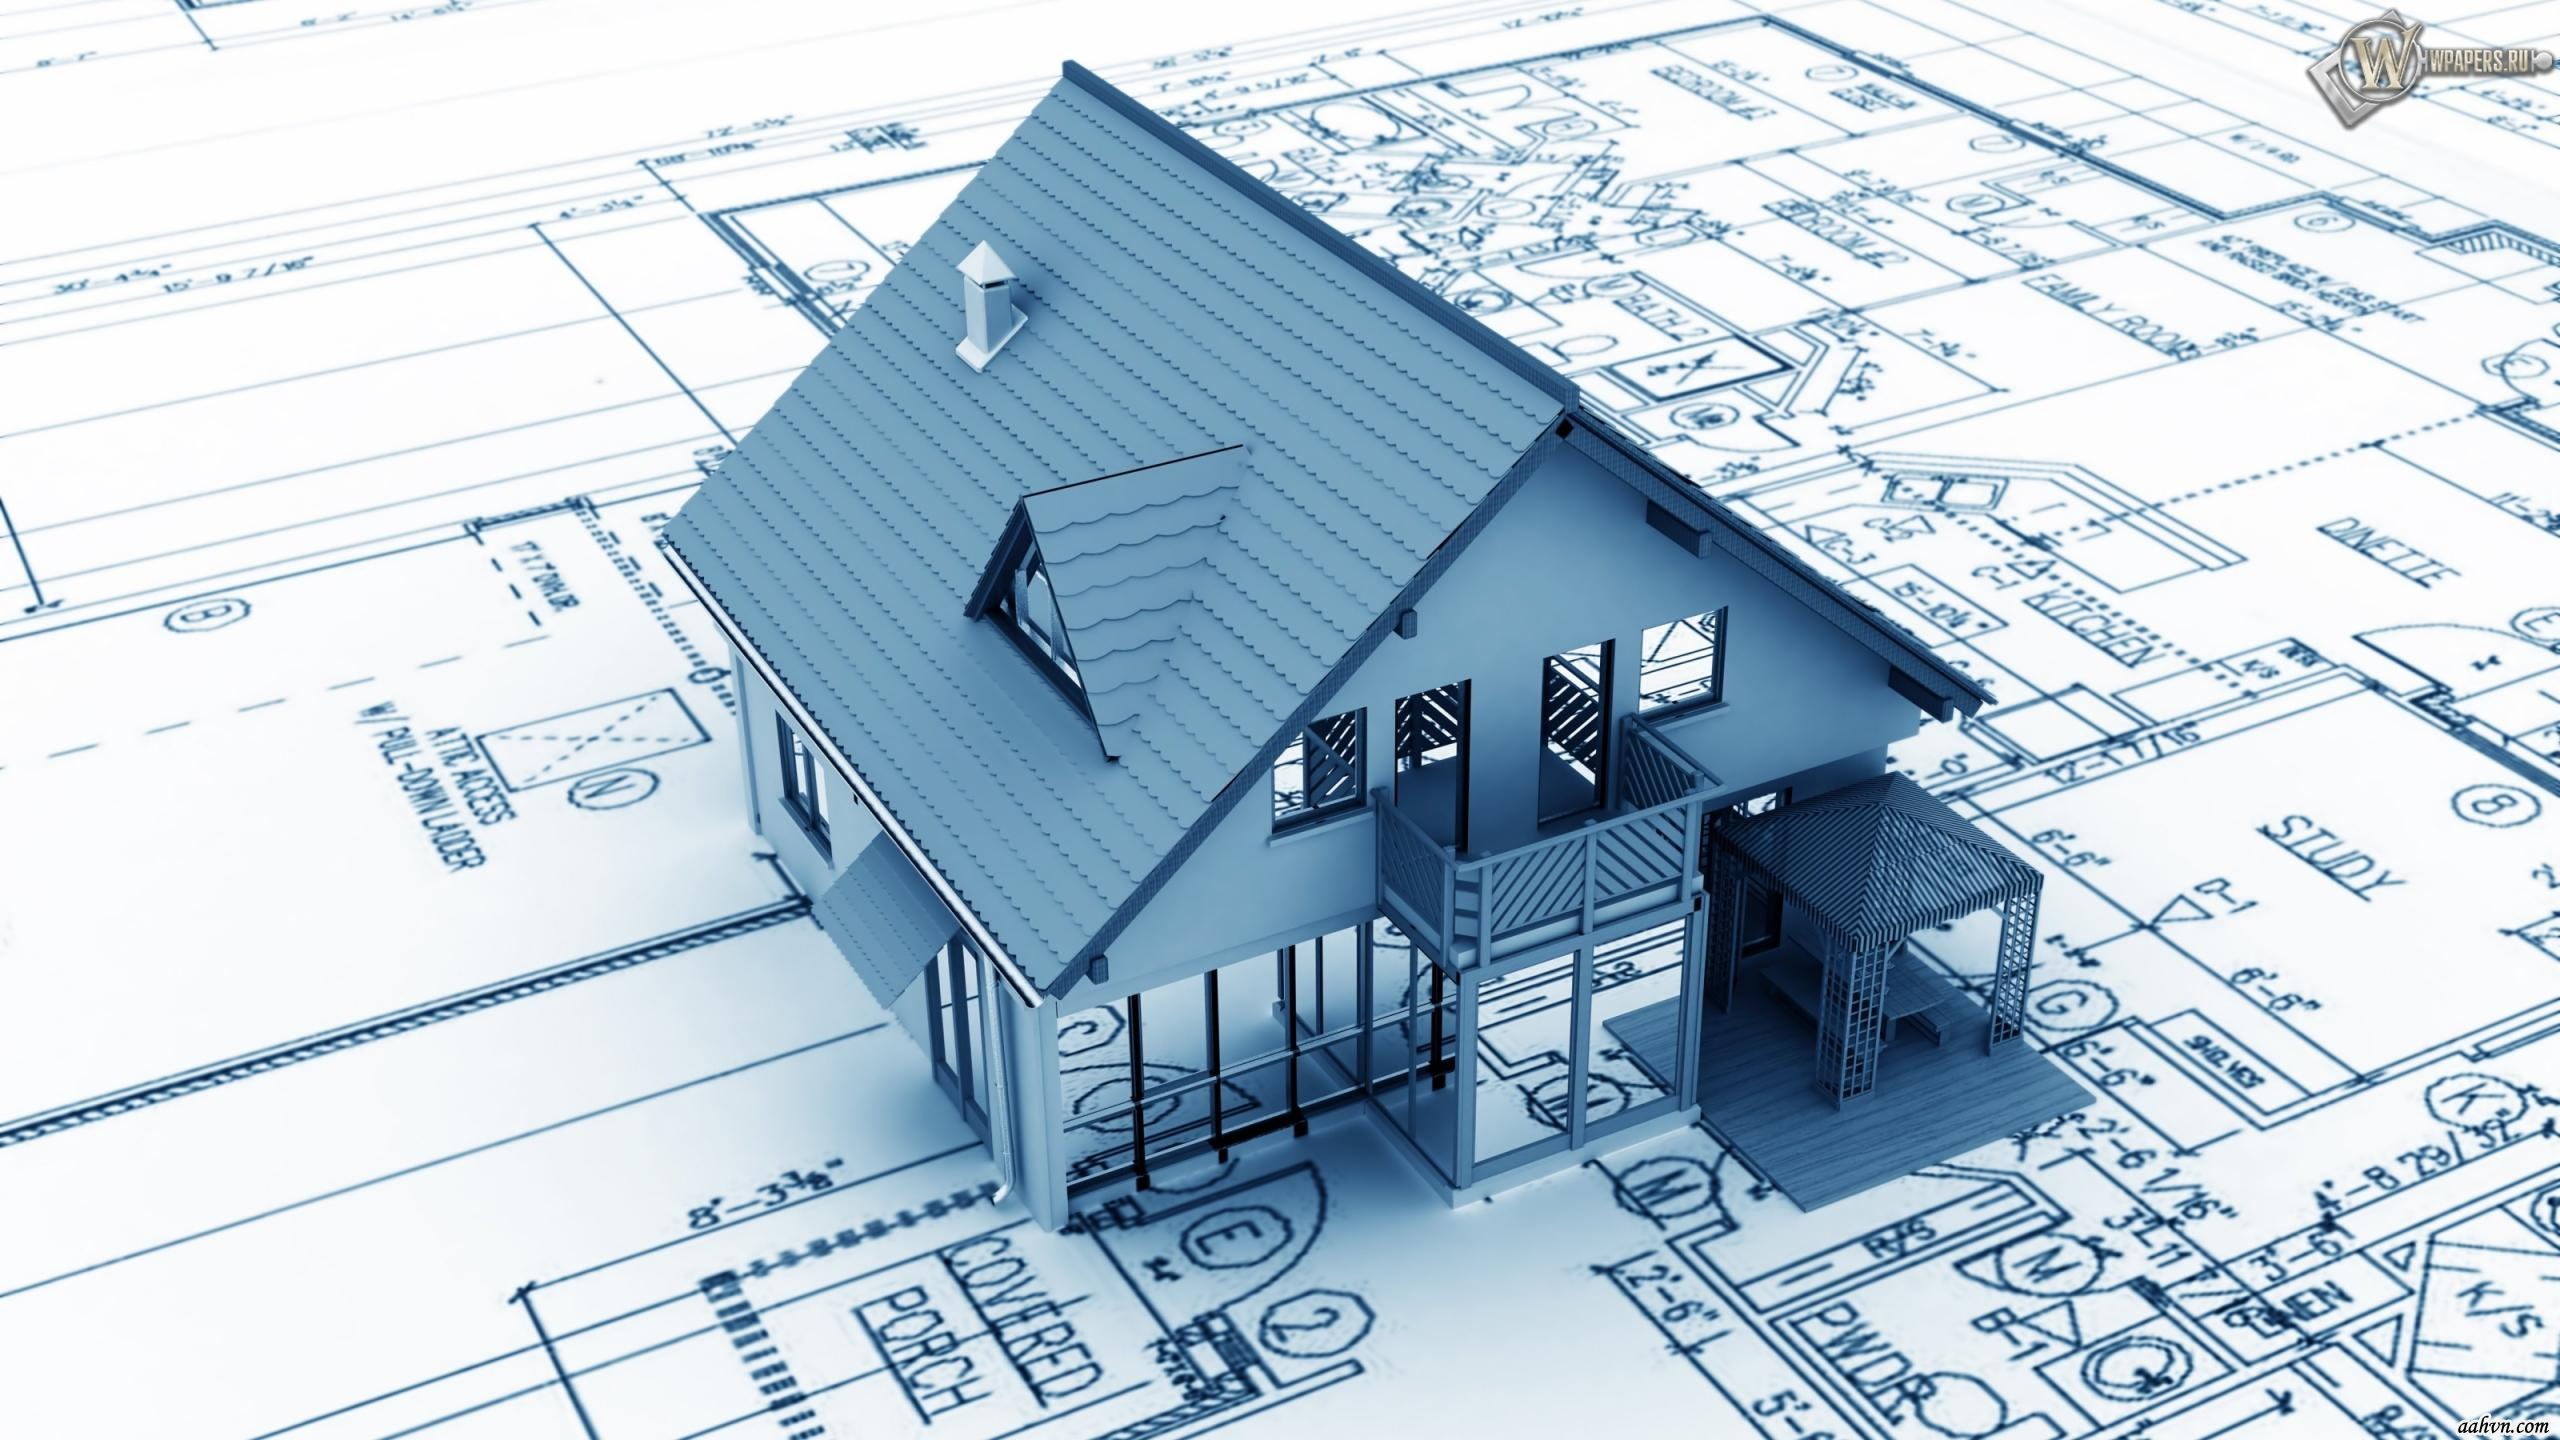 Construction involves various engineering discipline for example civil, mechanical and electrical.